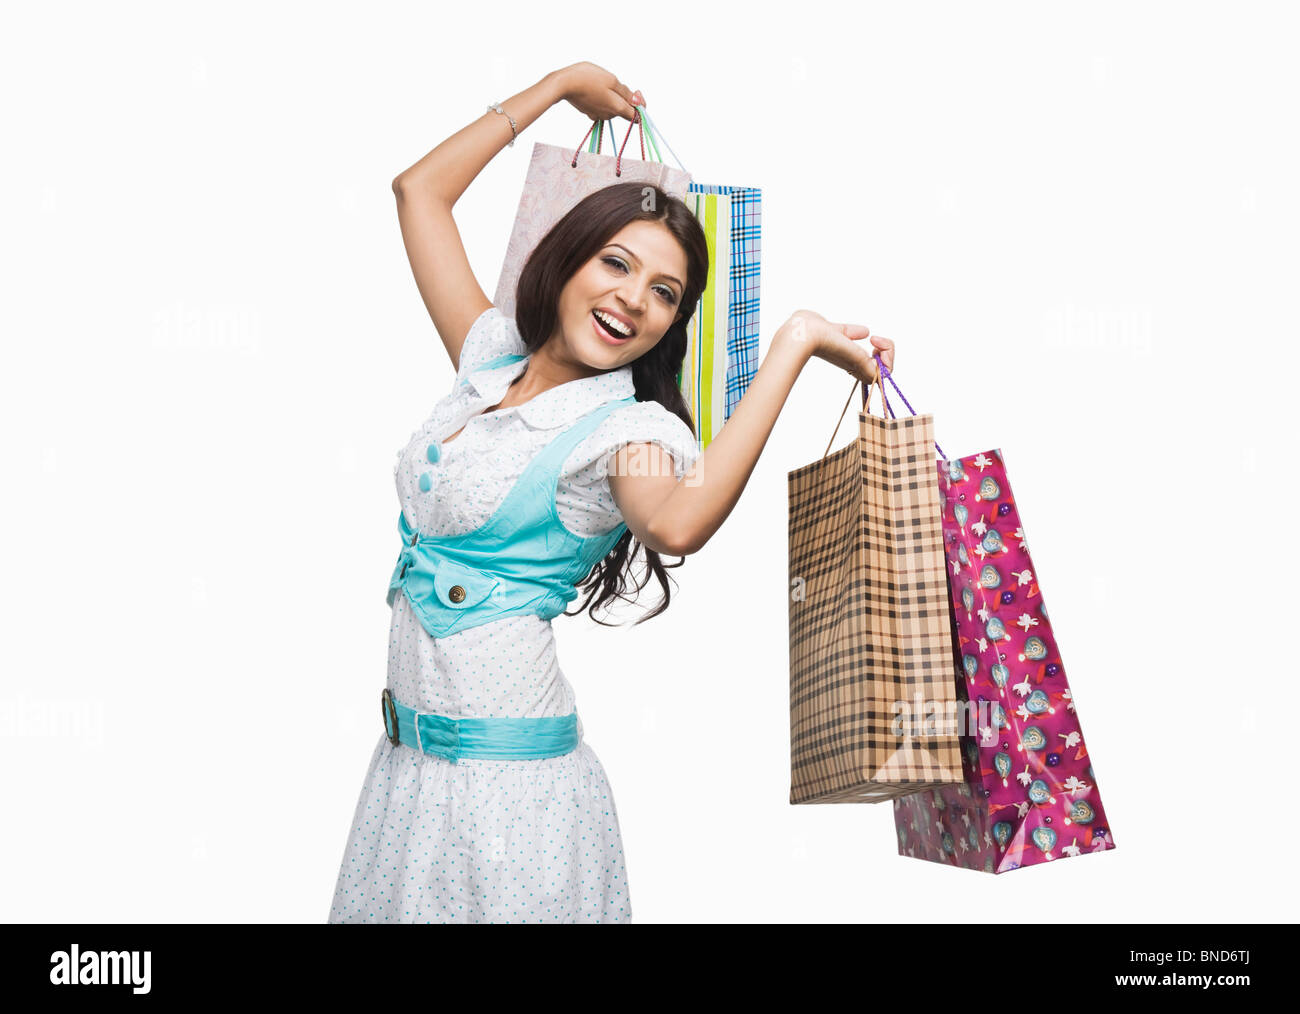 Woman carrying shopping bags and smiling - Stock Image